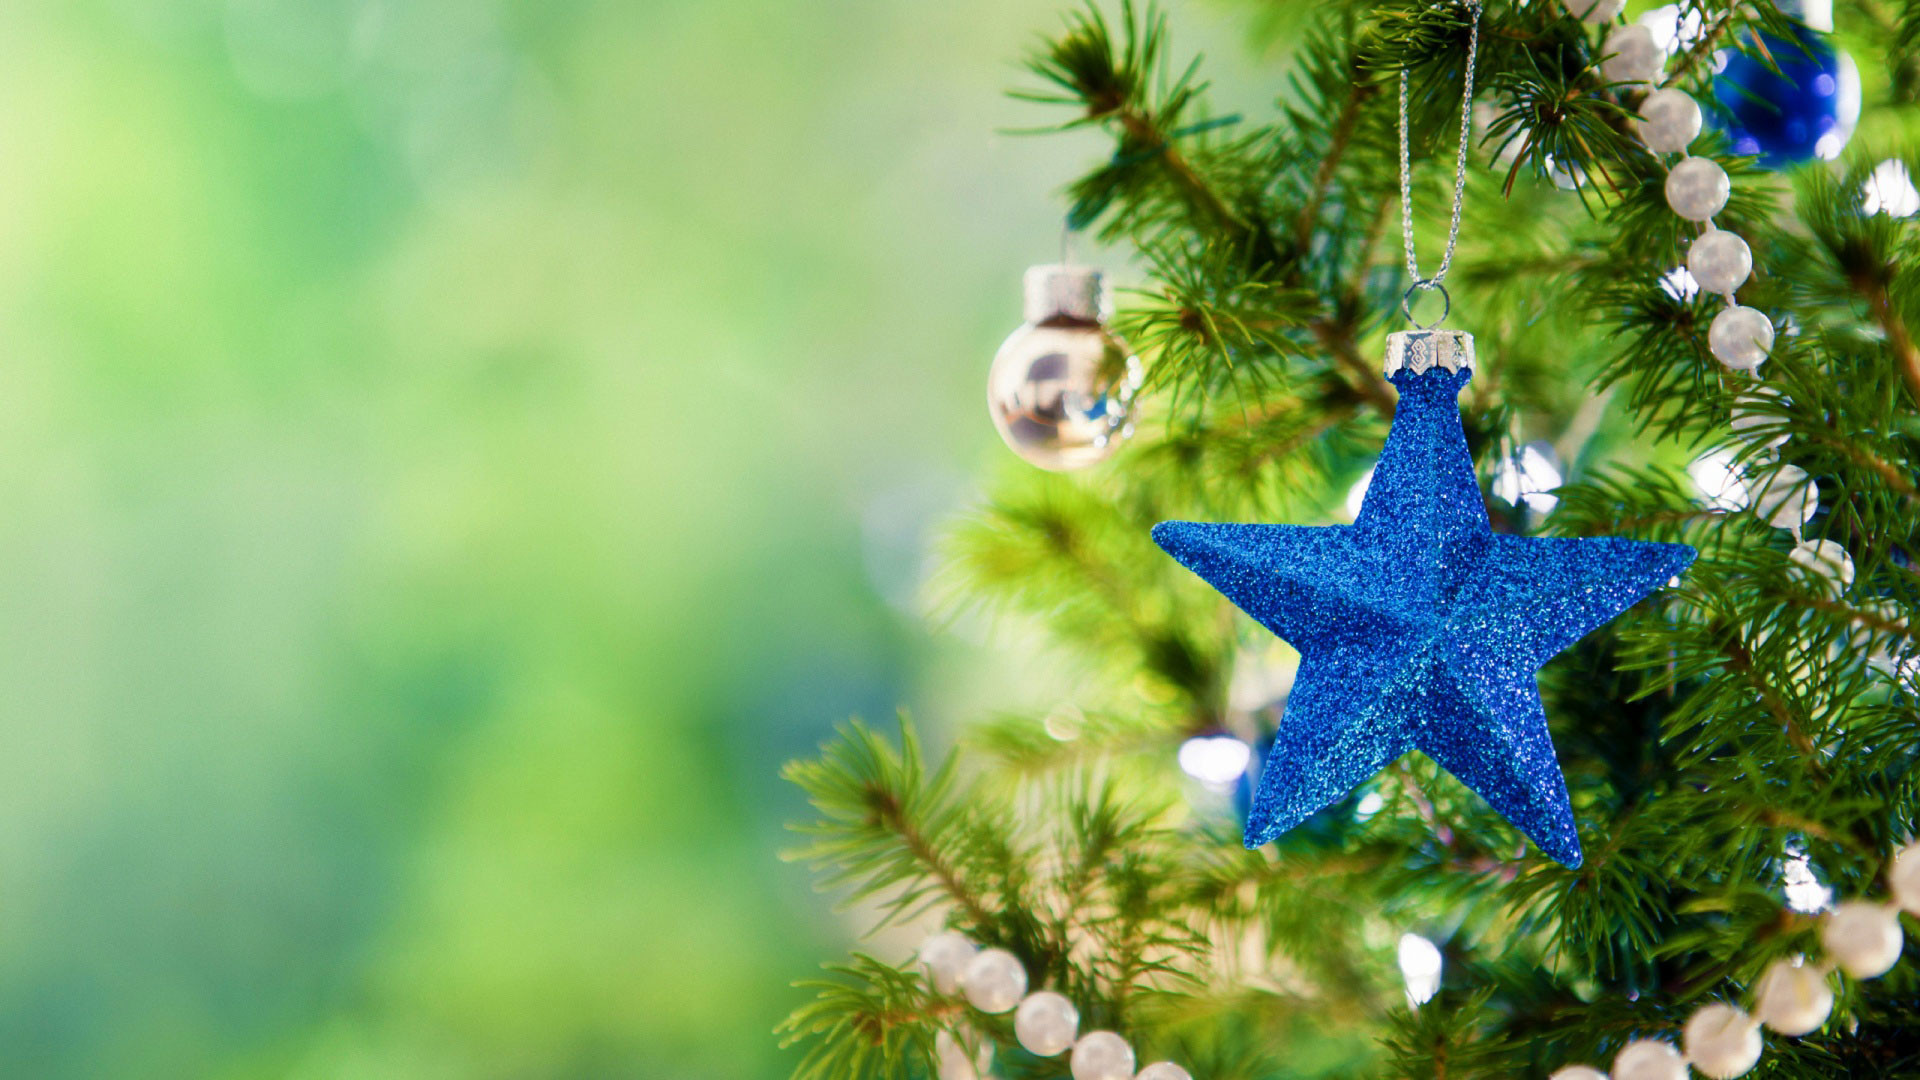 1920x1080 hd pics photos christmas christmas tree star desktop background wallpaper